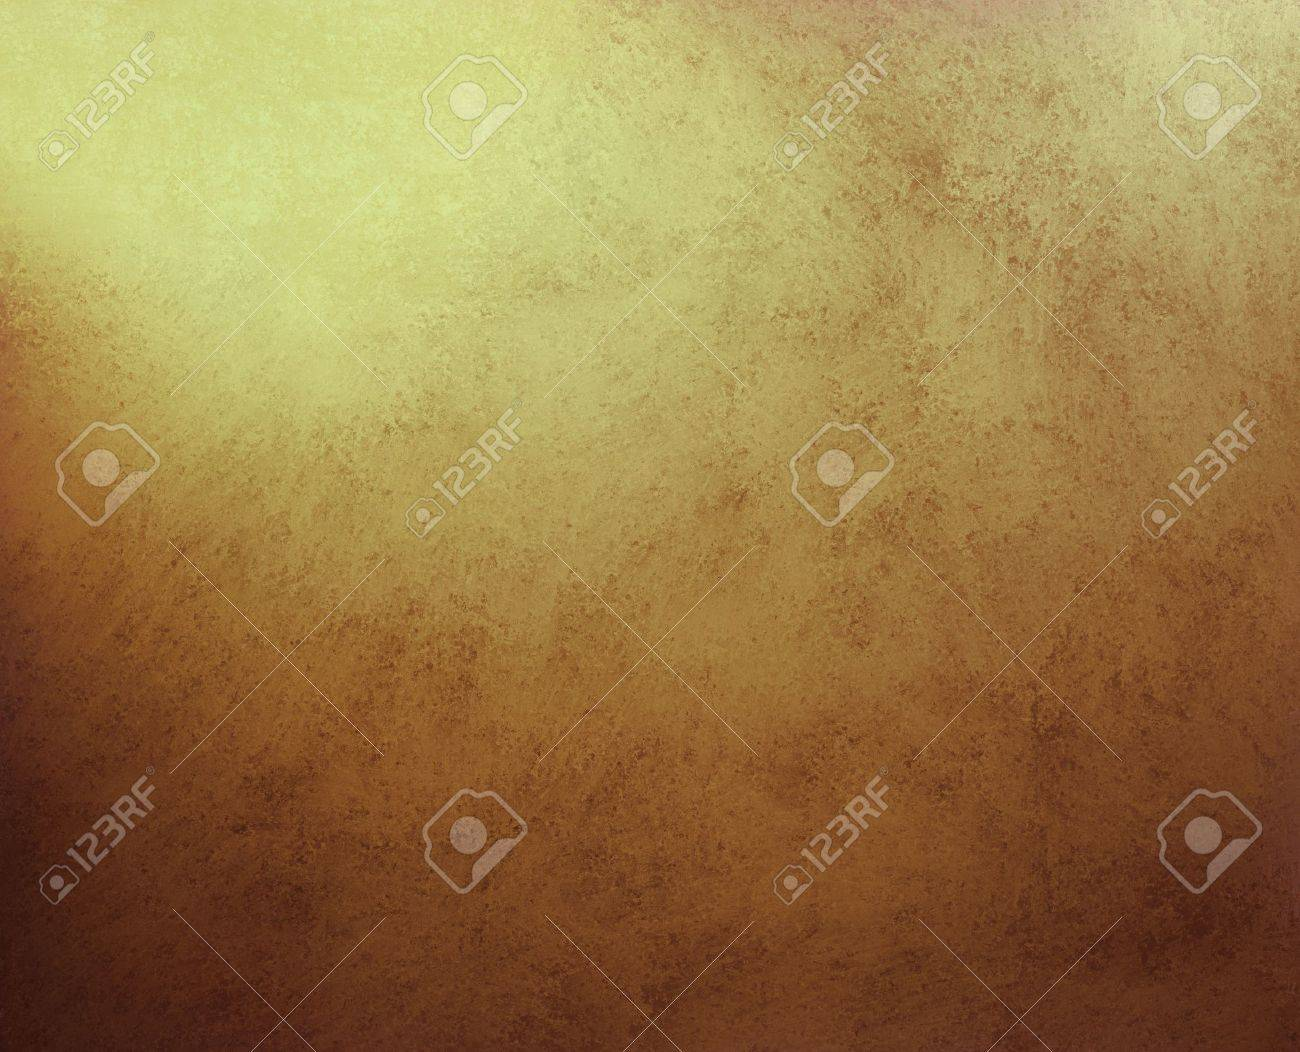 Gold Background Or Brown Paper With Gold Highlights With Abstract ...